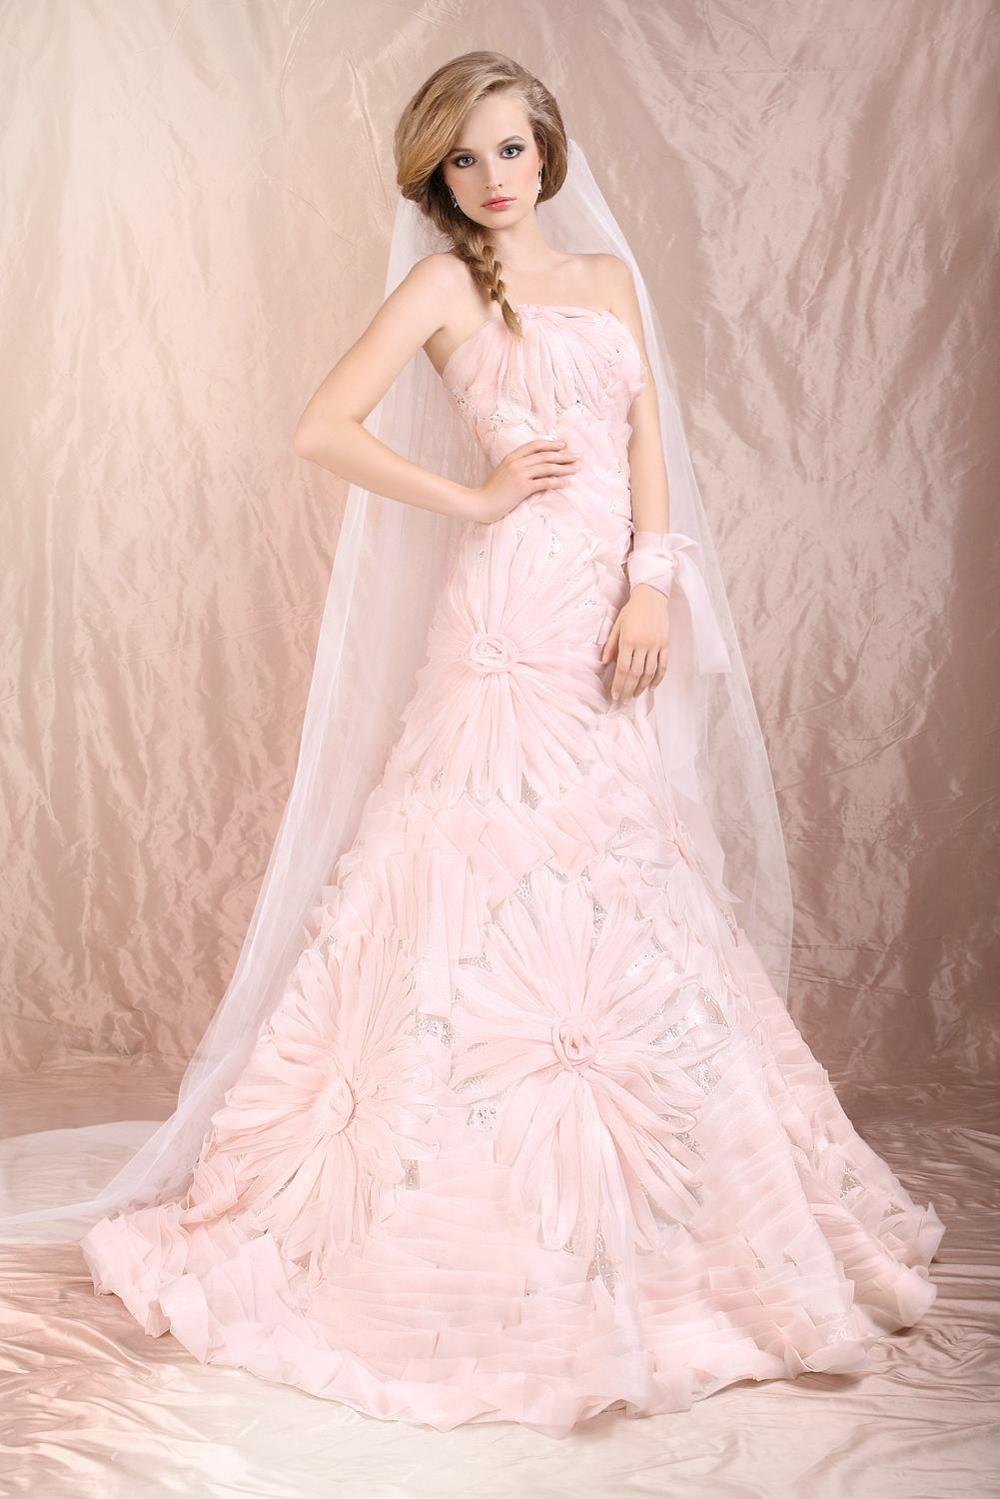 How to Pick Out a Good Blush Wedding Dress